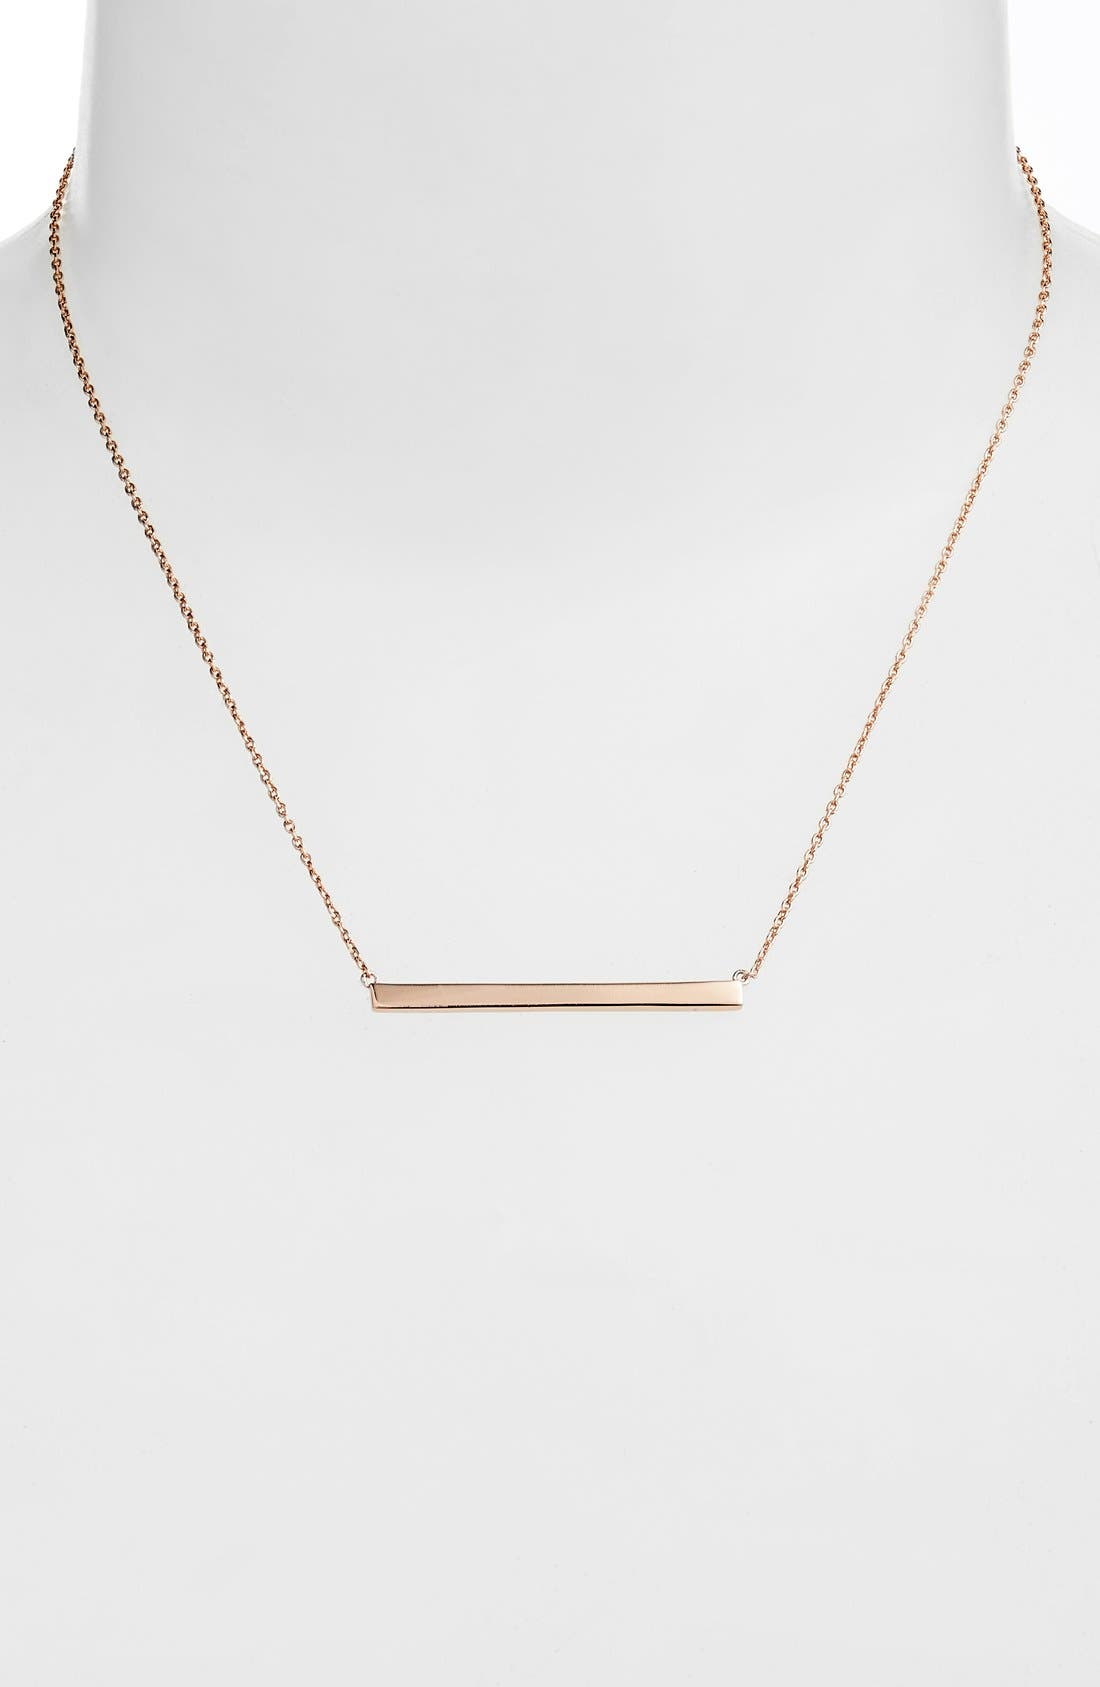 8627577a9 Women's Argento Vivo Pendant Necklaces | Nordstrom